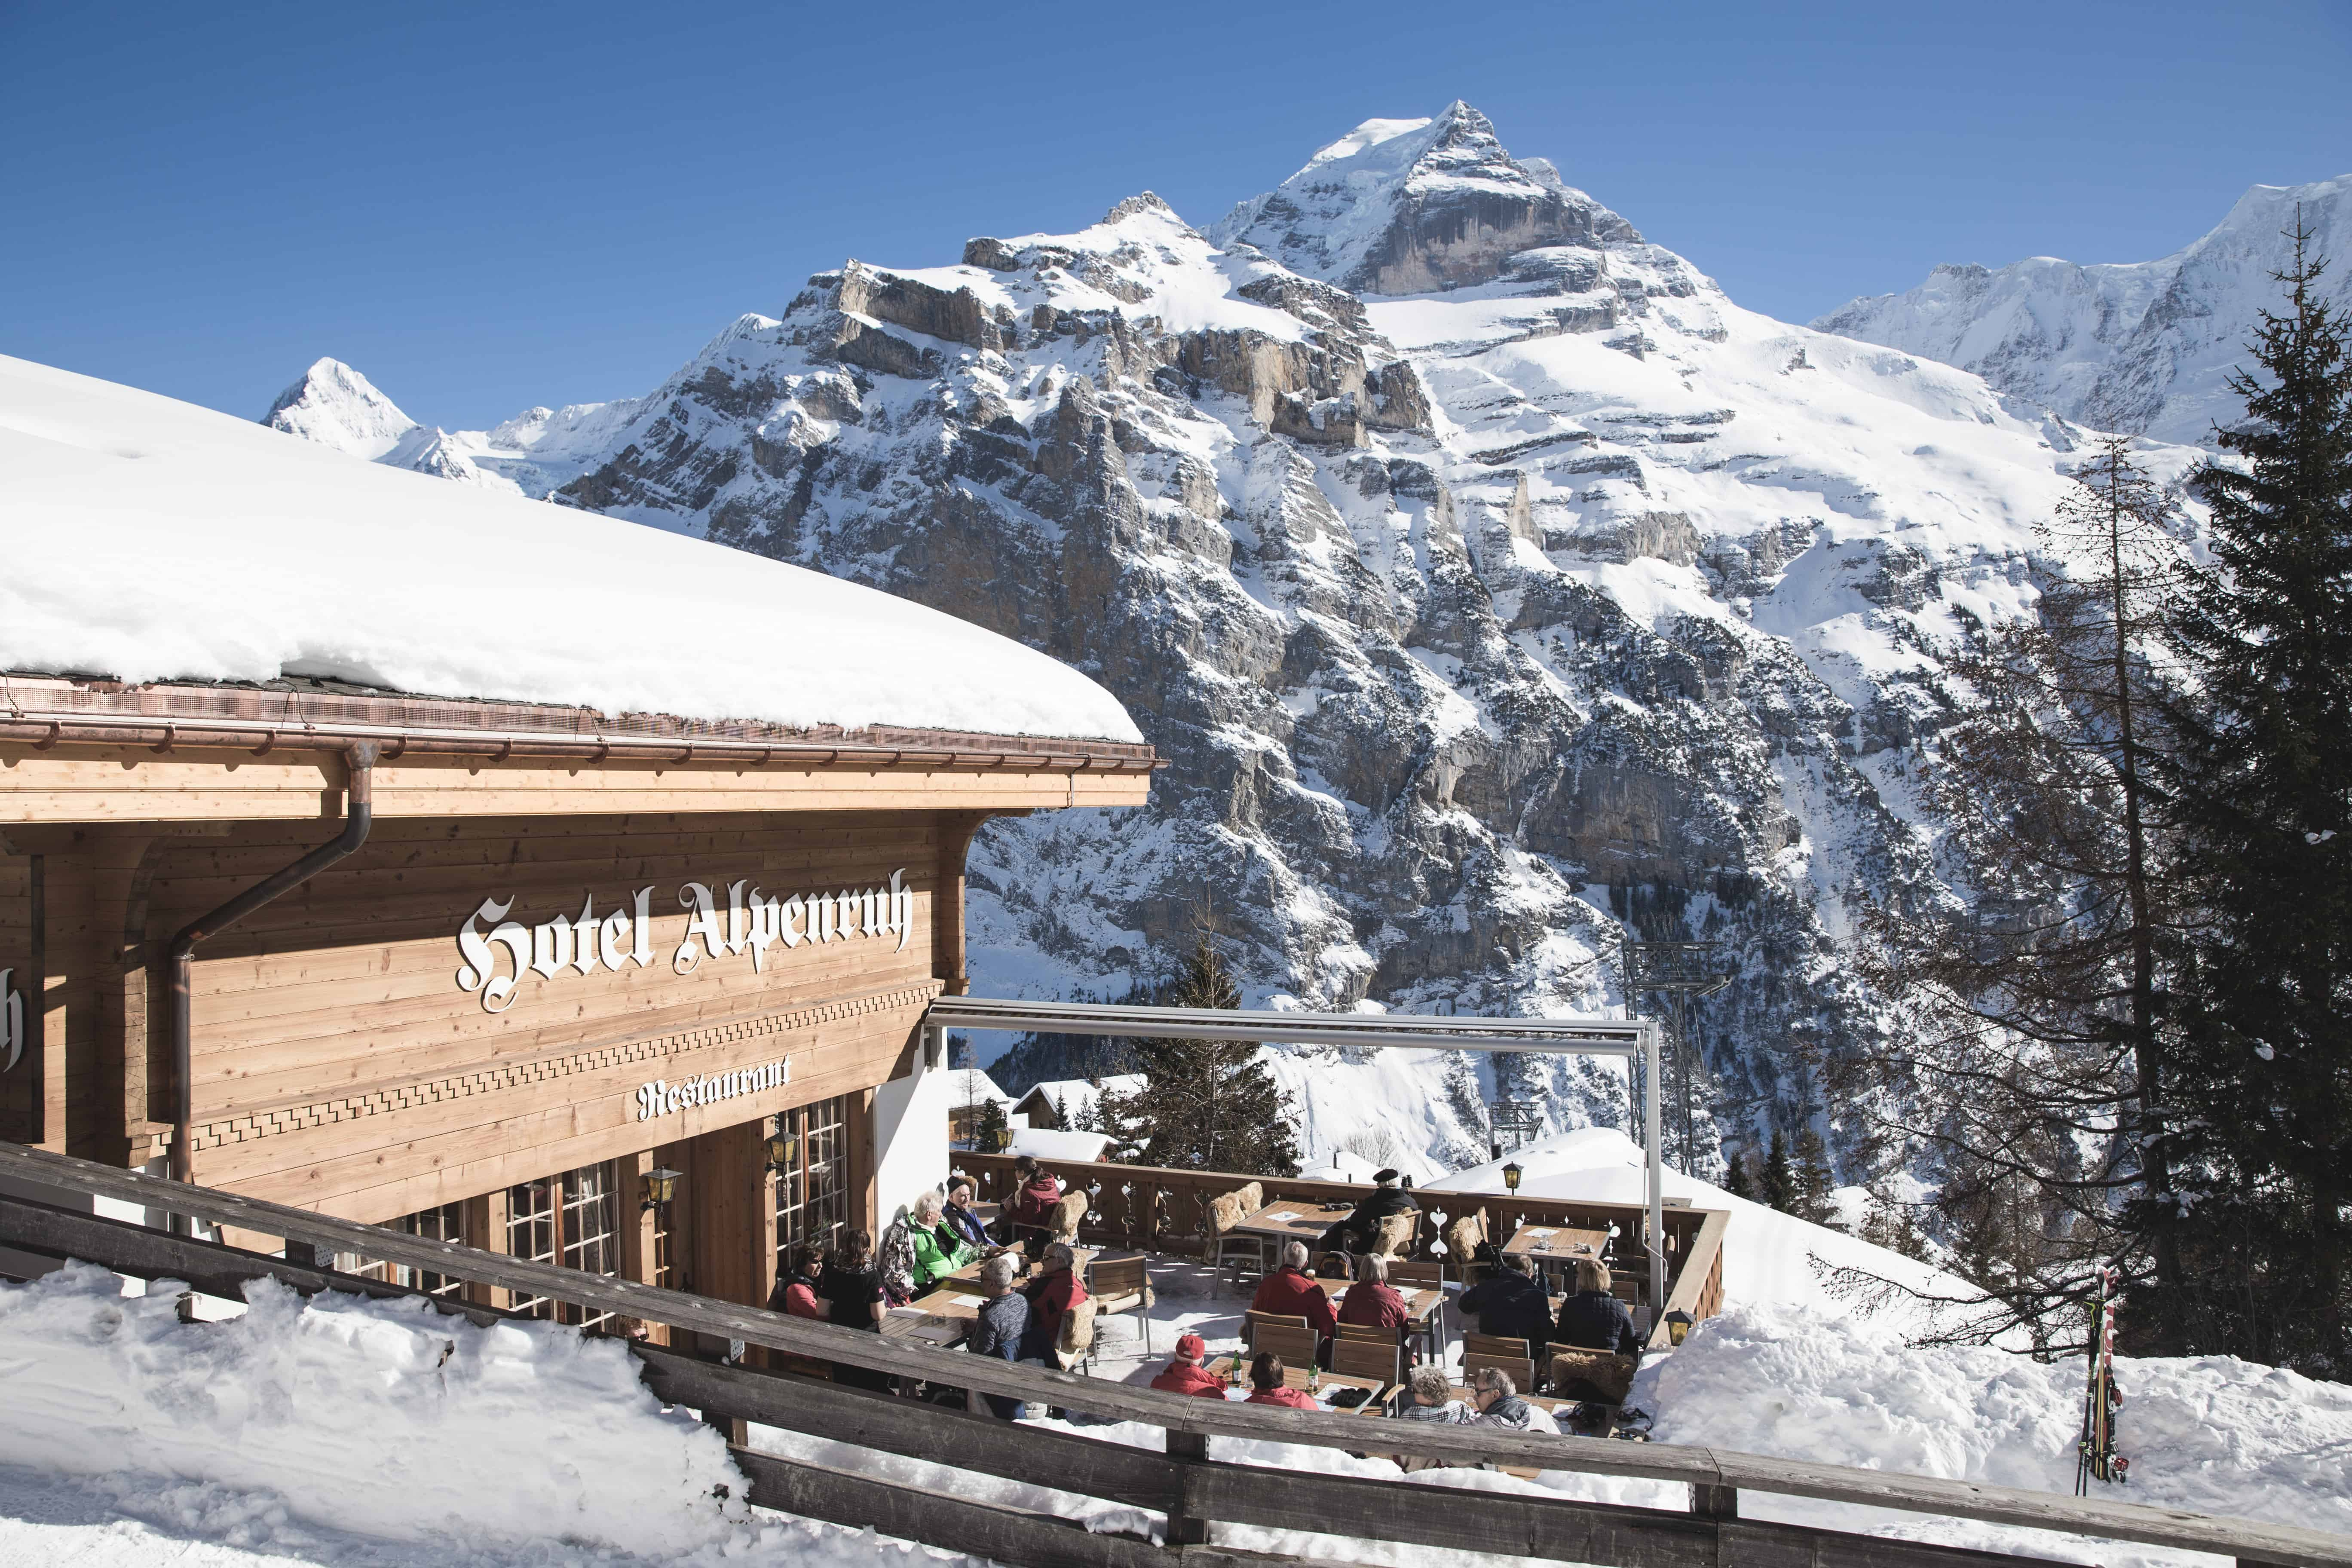 Hotel Alpernath is a good spot to get a rösti in Mürren, a ski town in the Swiss Alps